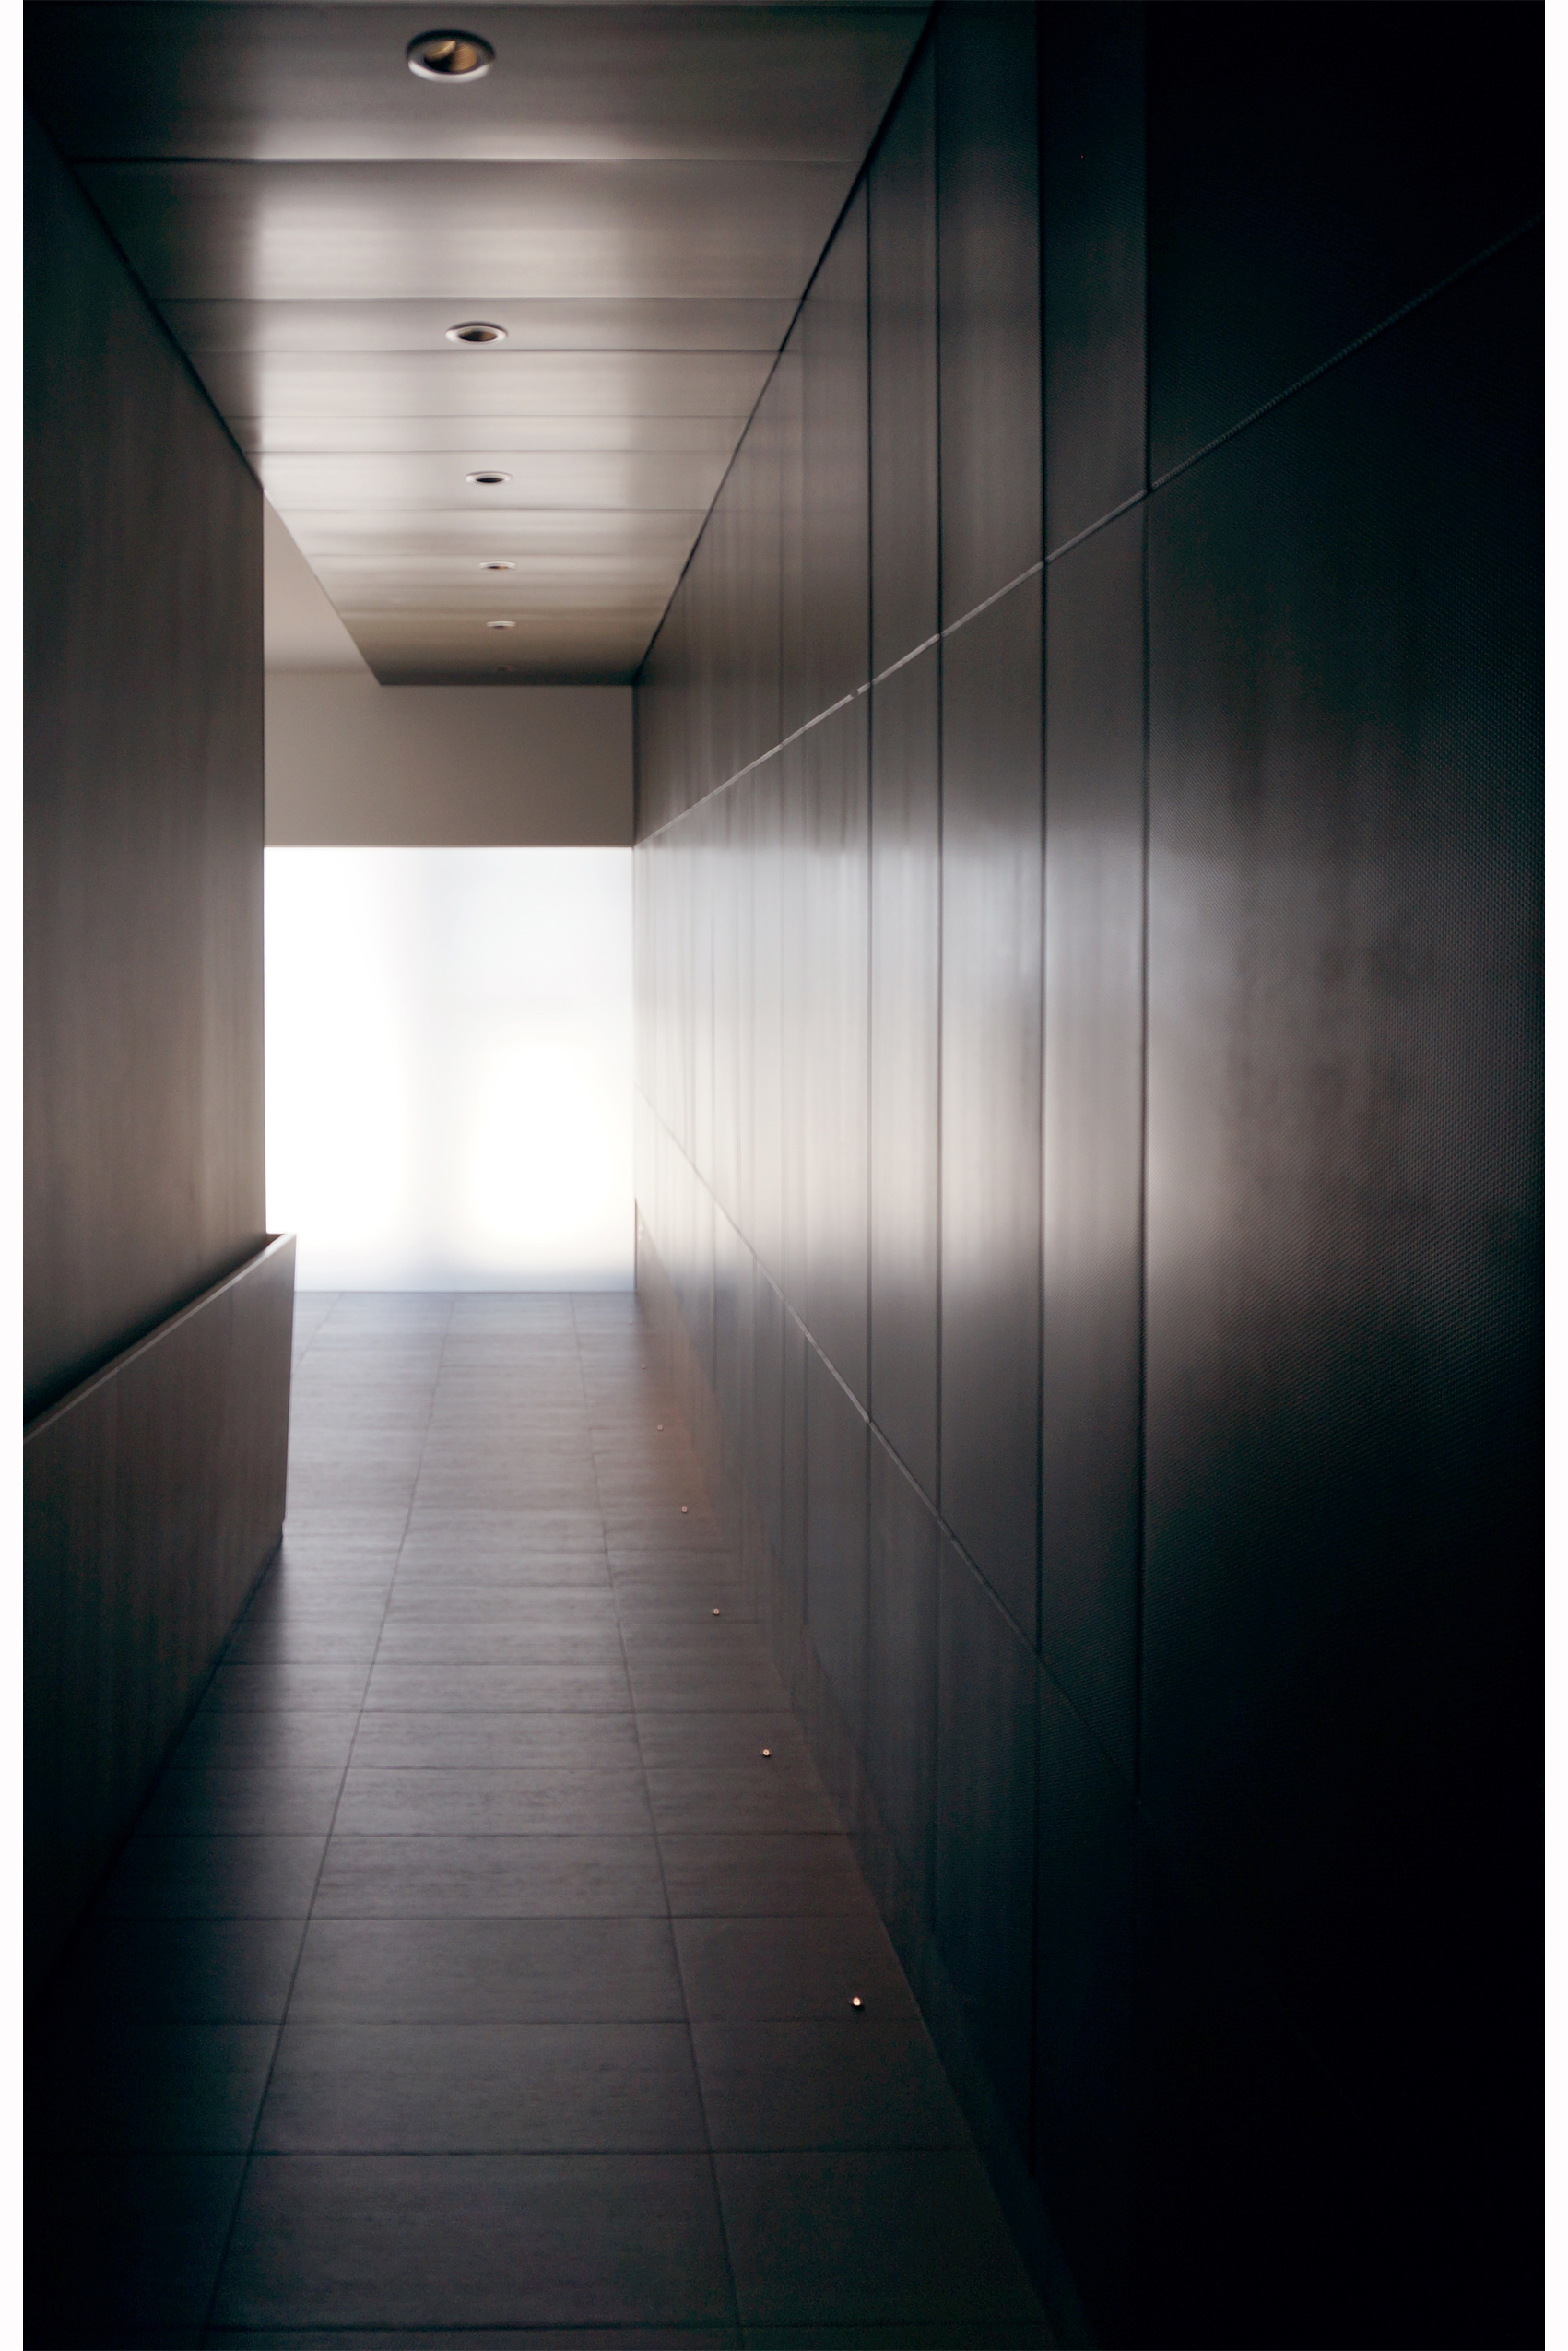 grace_3_entry_hall_1.jpg